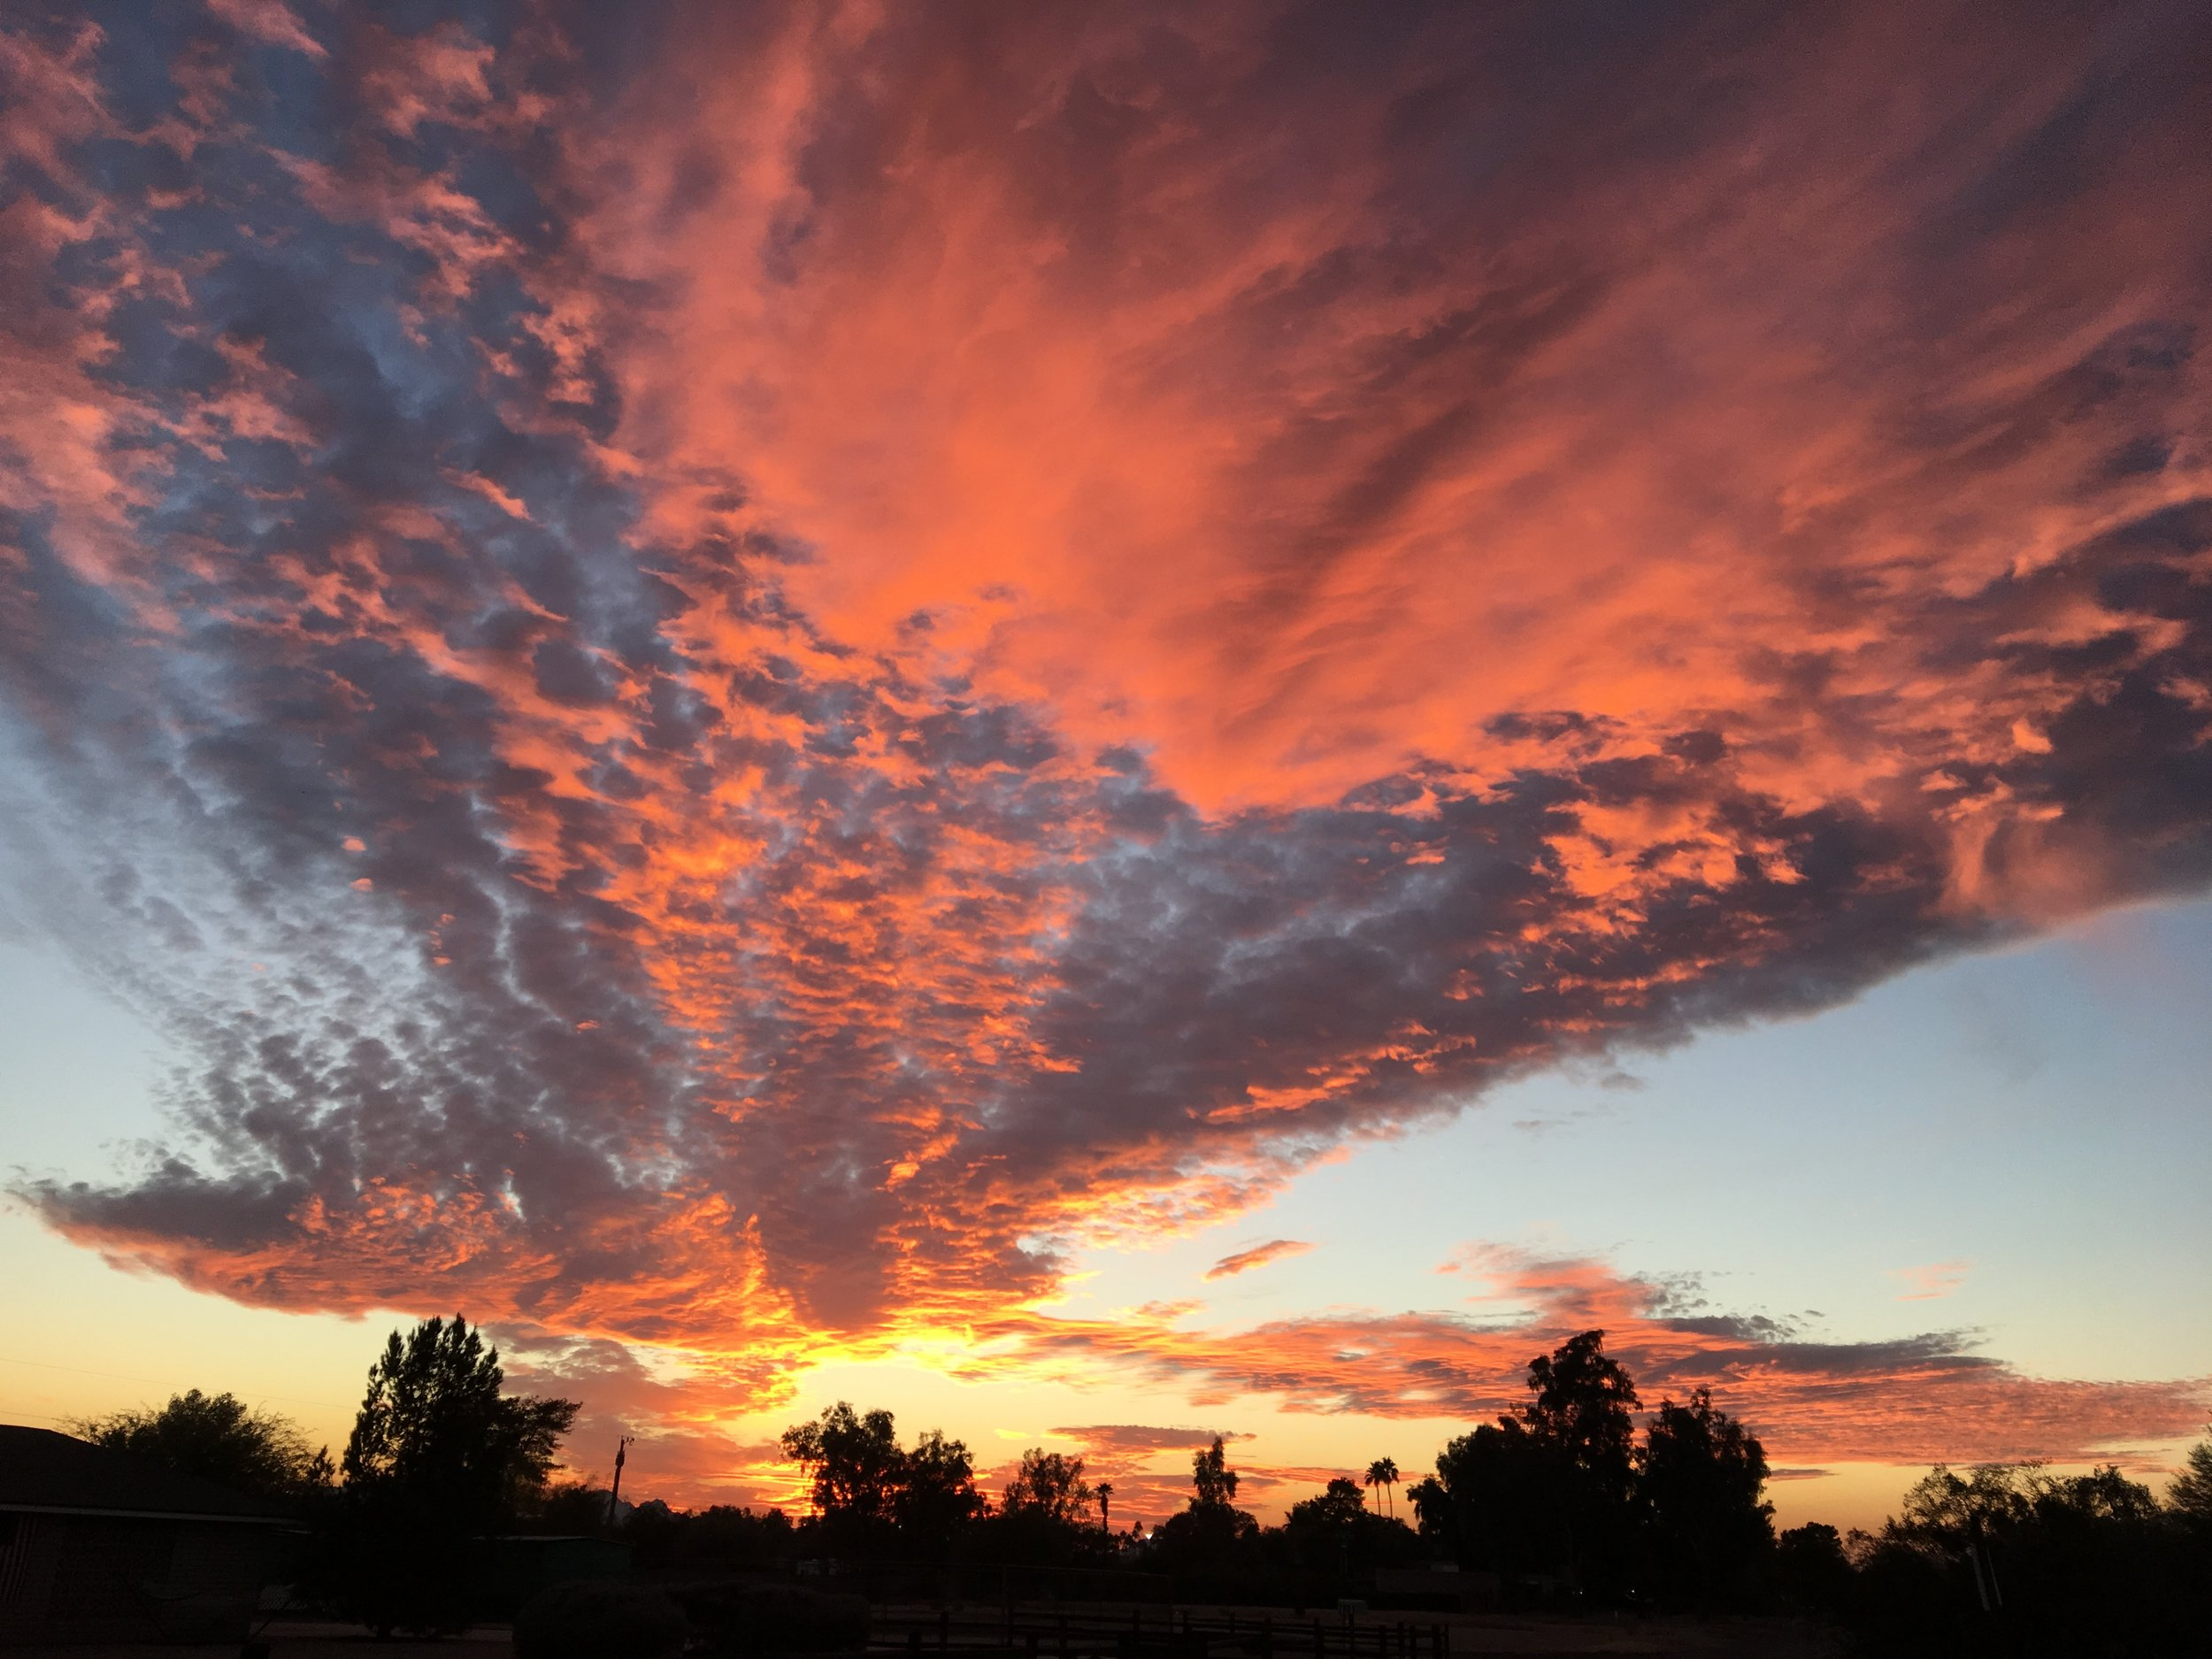 Sunsets - I took this picture from our front yard. Yes, the desert sunset is that vibrant & beautiful.